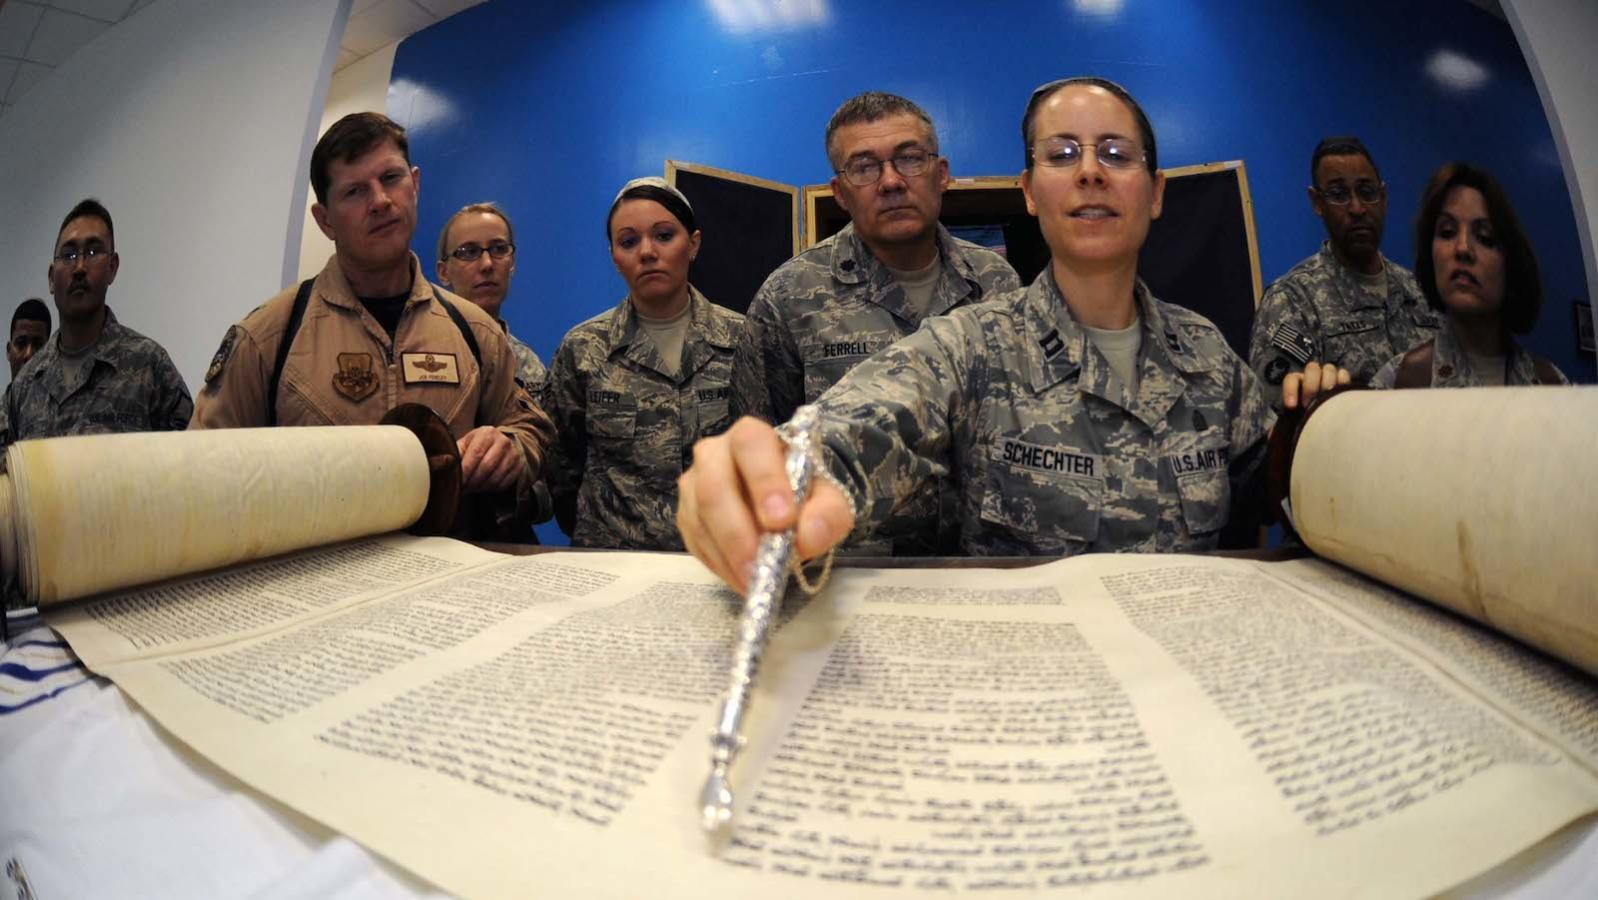 How To Have An Aliyah My Jewish Learning